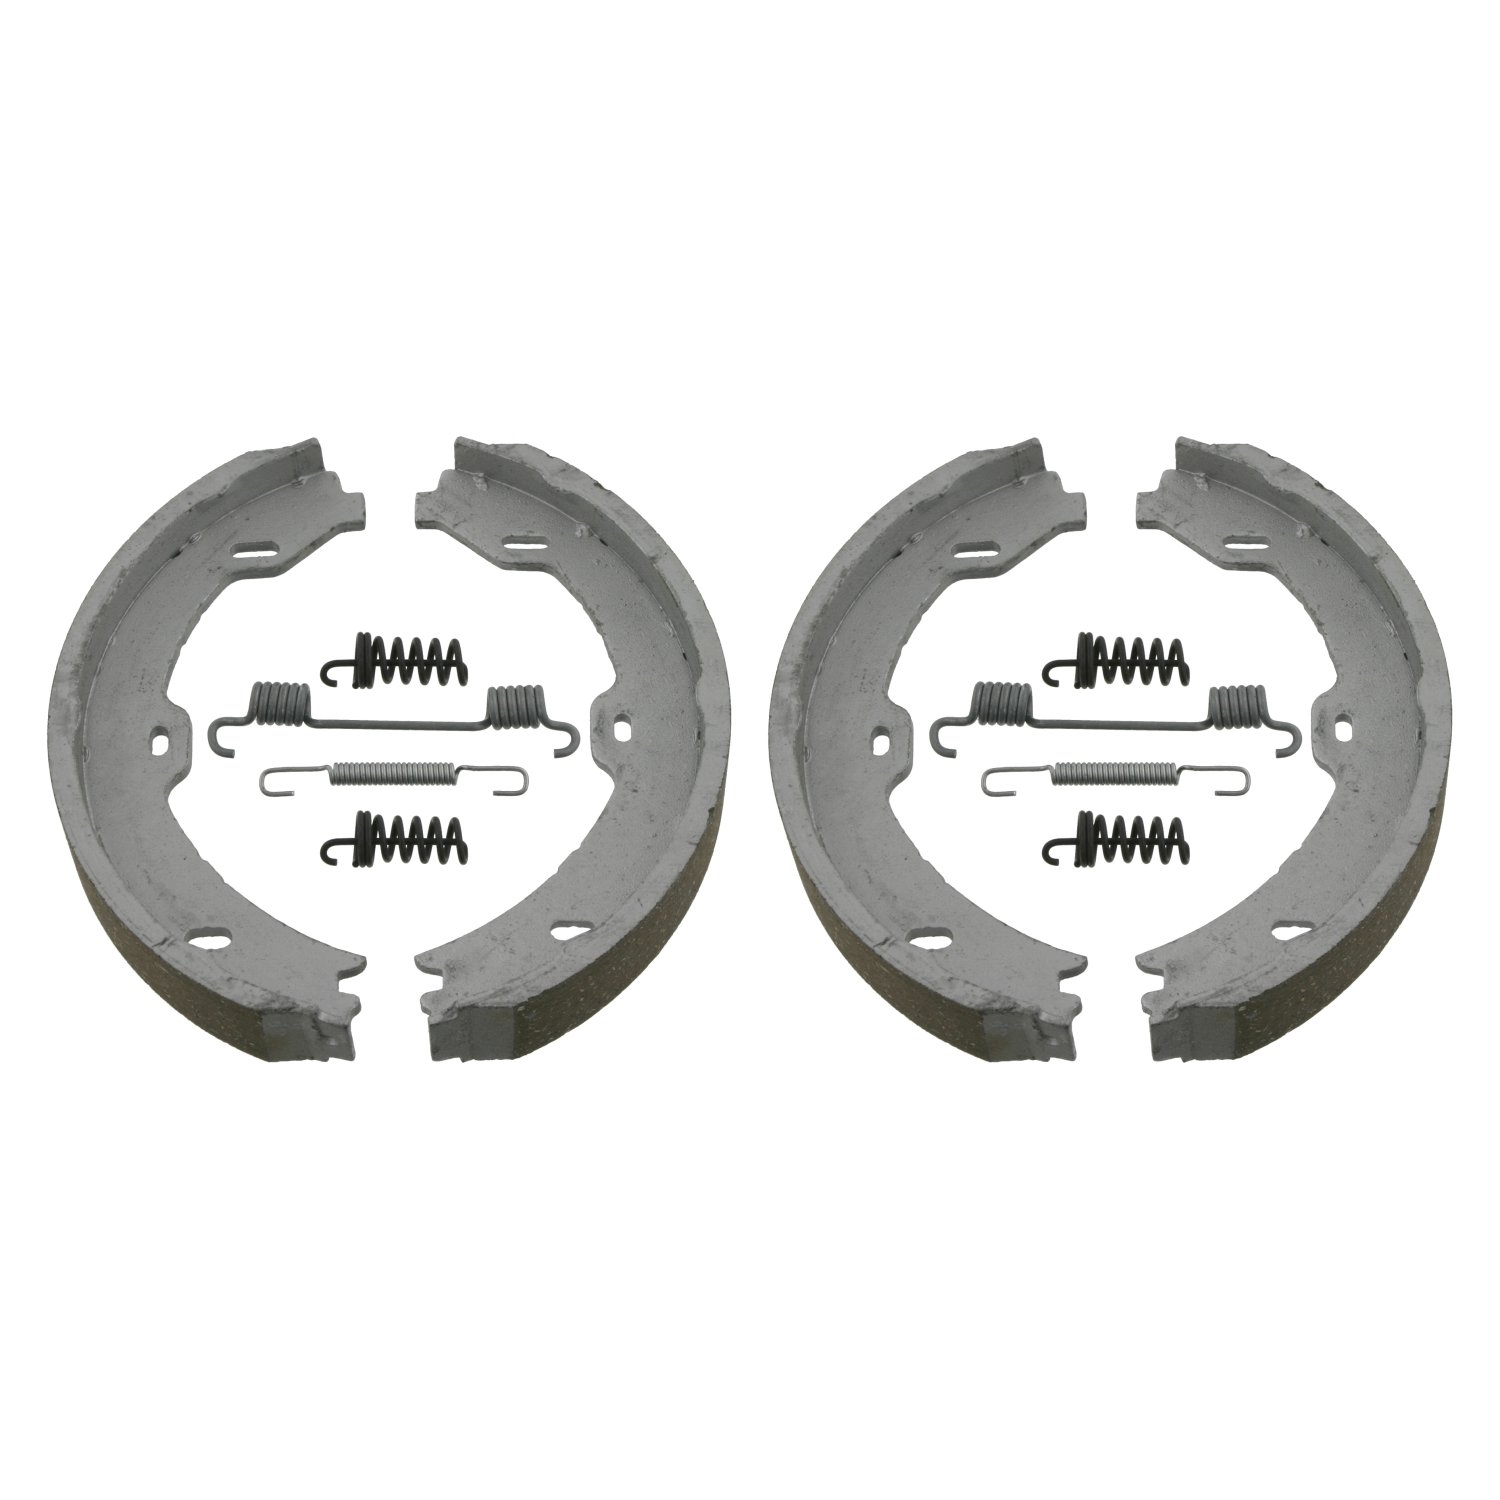 pack of two febi bilstein 02100 Brake Shoe Set for parking brake with additional parts